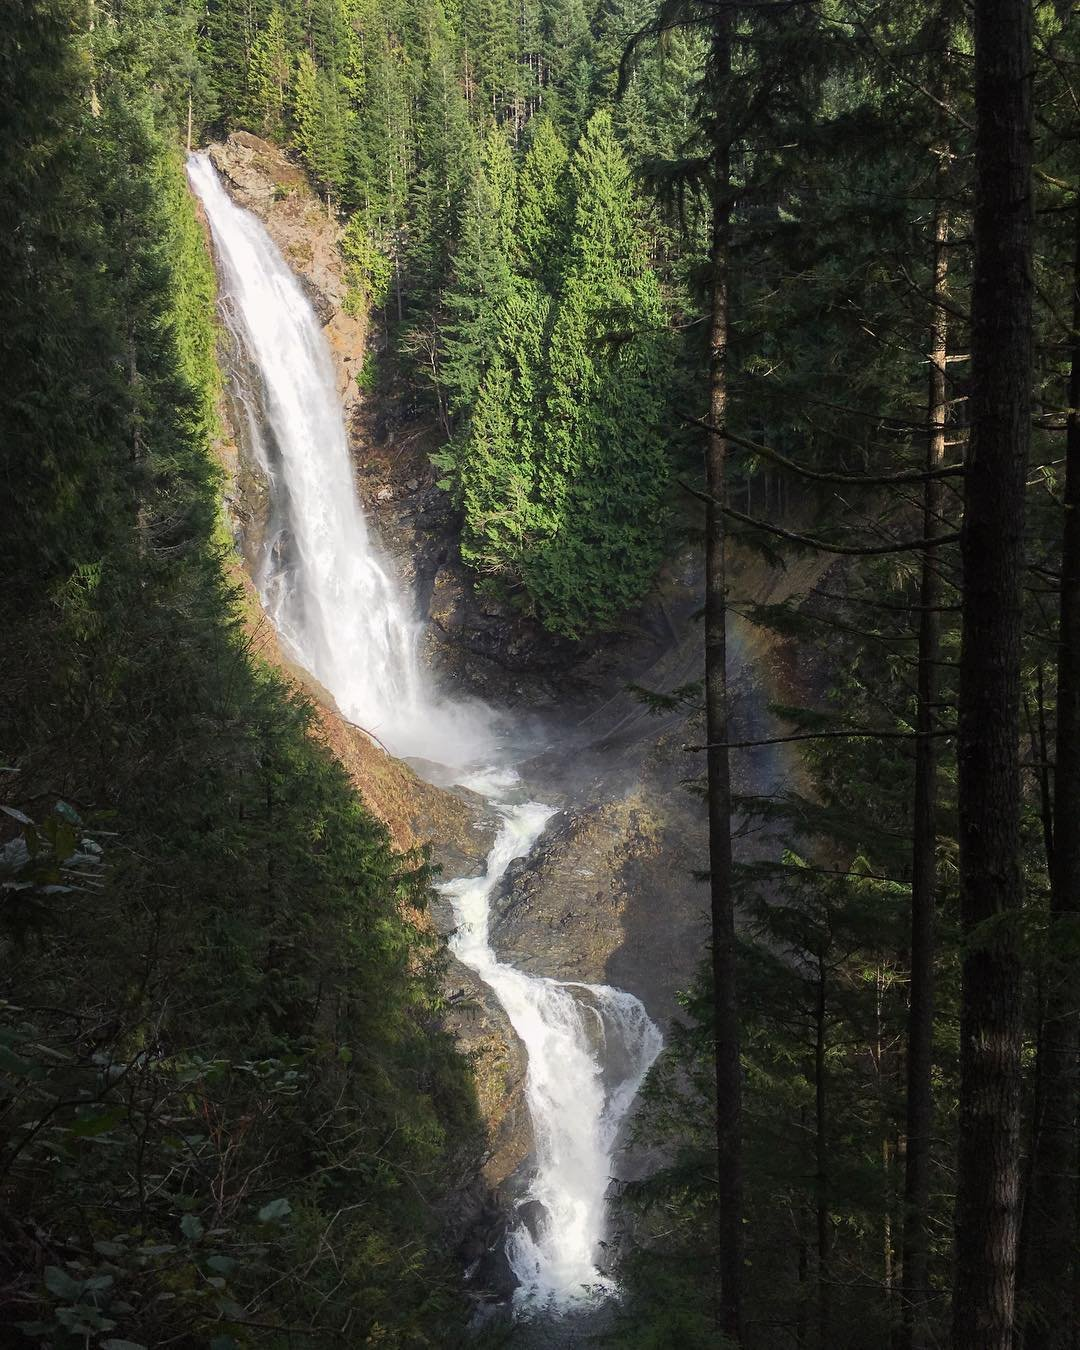 Large waterfall surrounded by trees at Wallace Falls near Bothell, Washington.